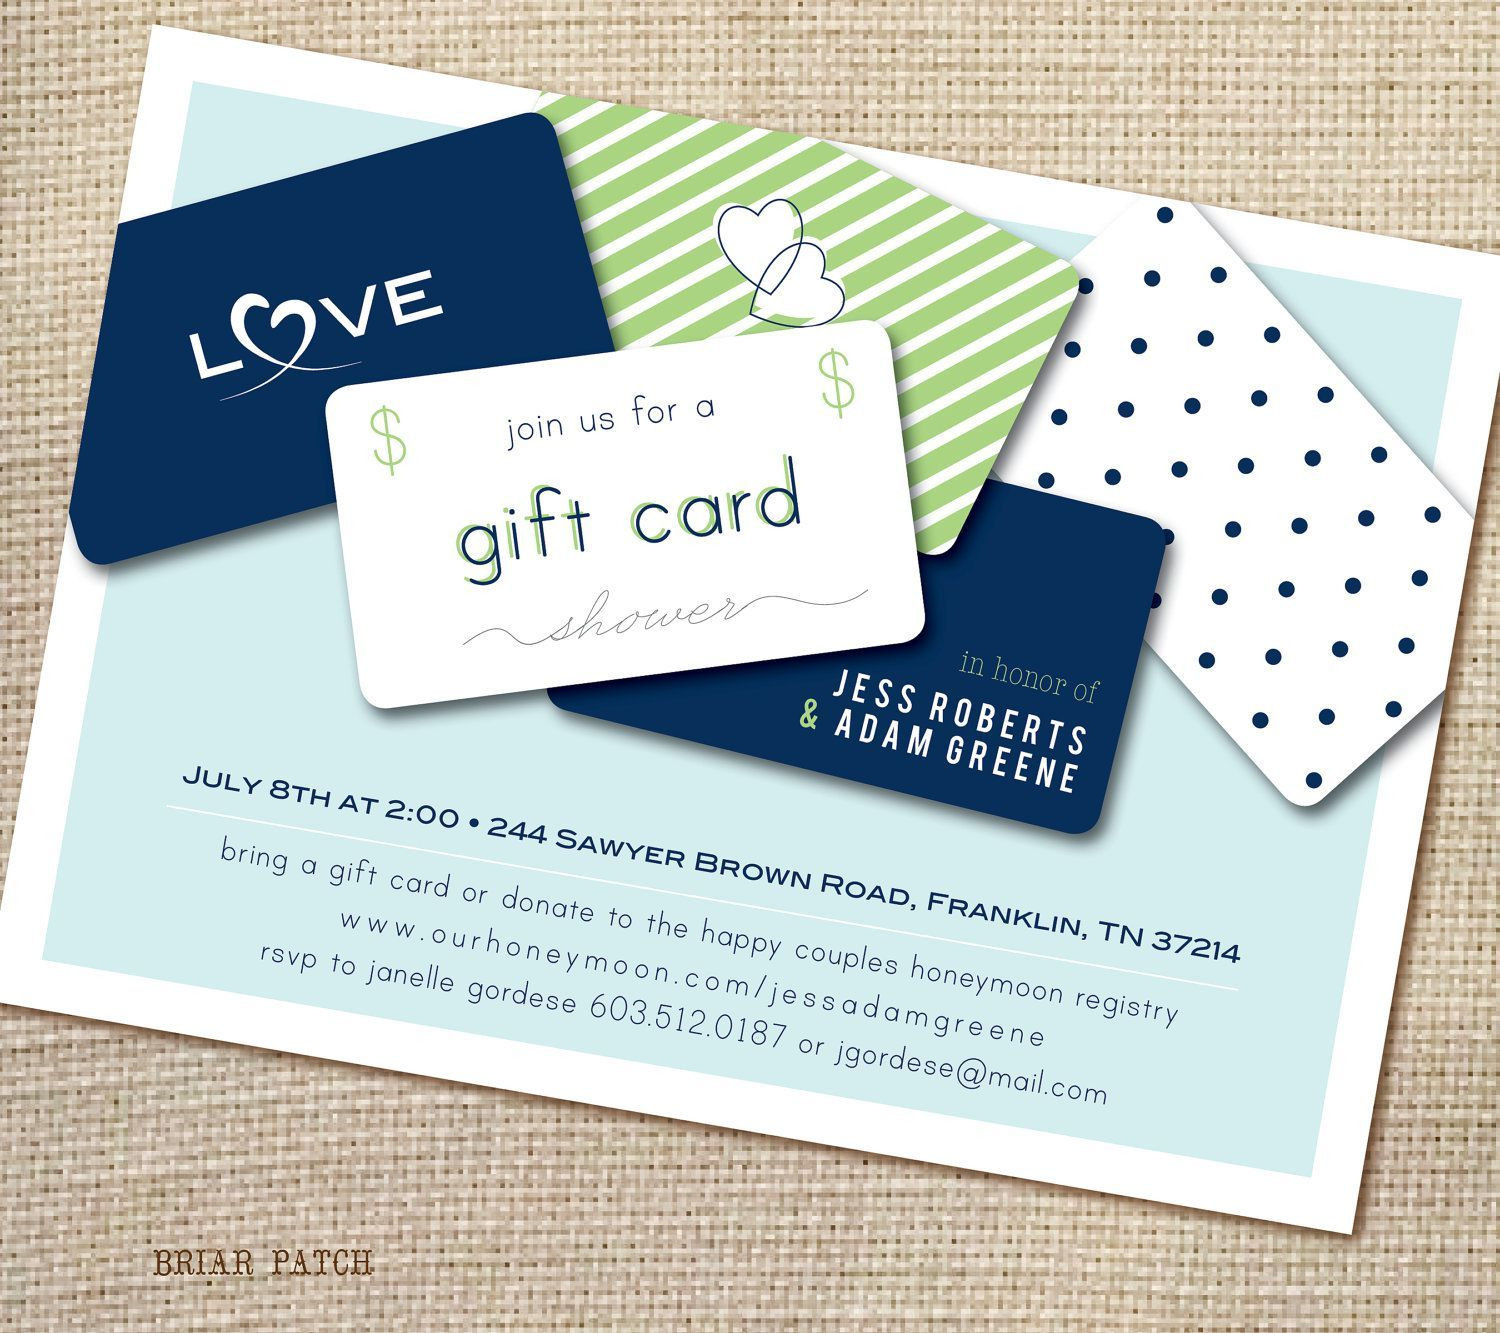 Best ideas about Baby Shower Gift Card Ideas . Save or Pin t card bridal shower invitation wording Now.